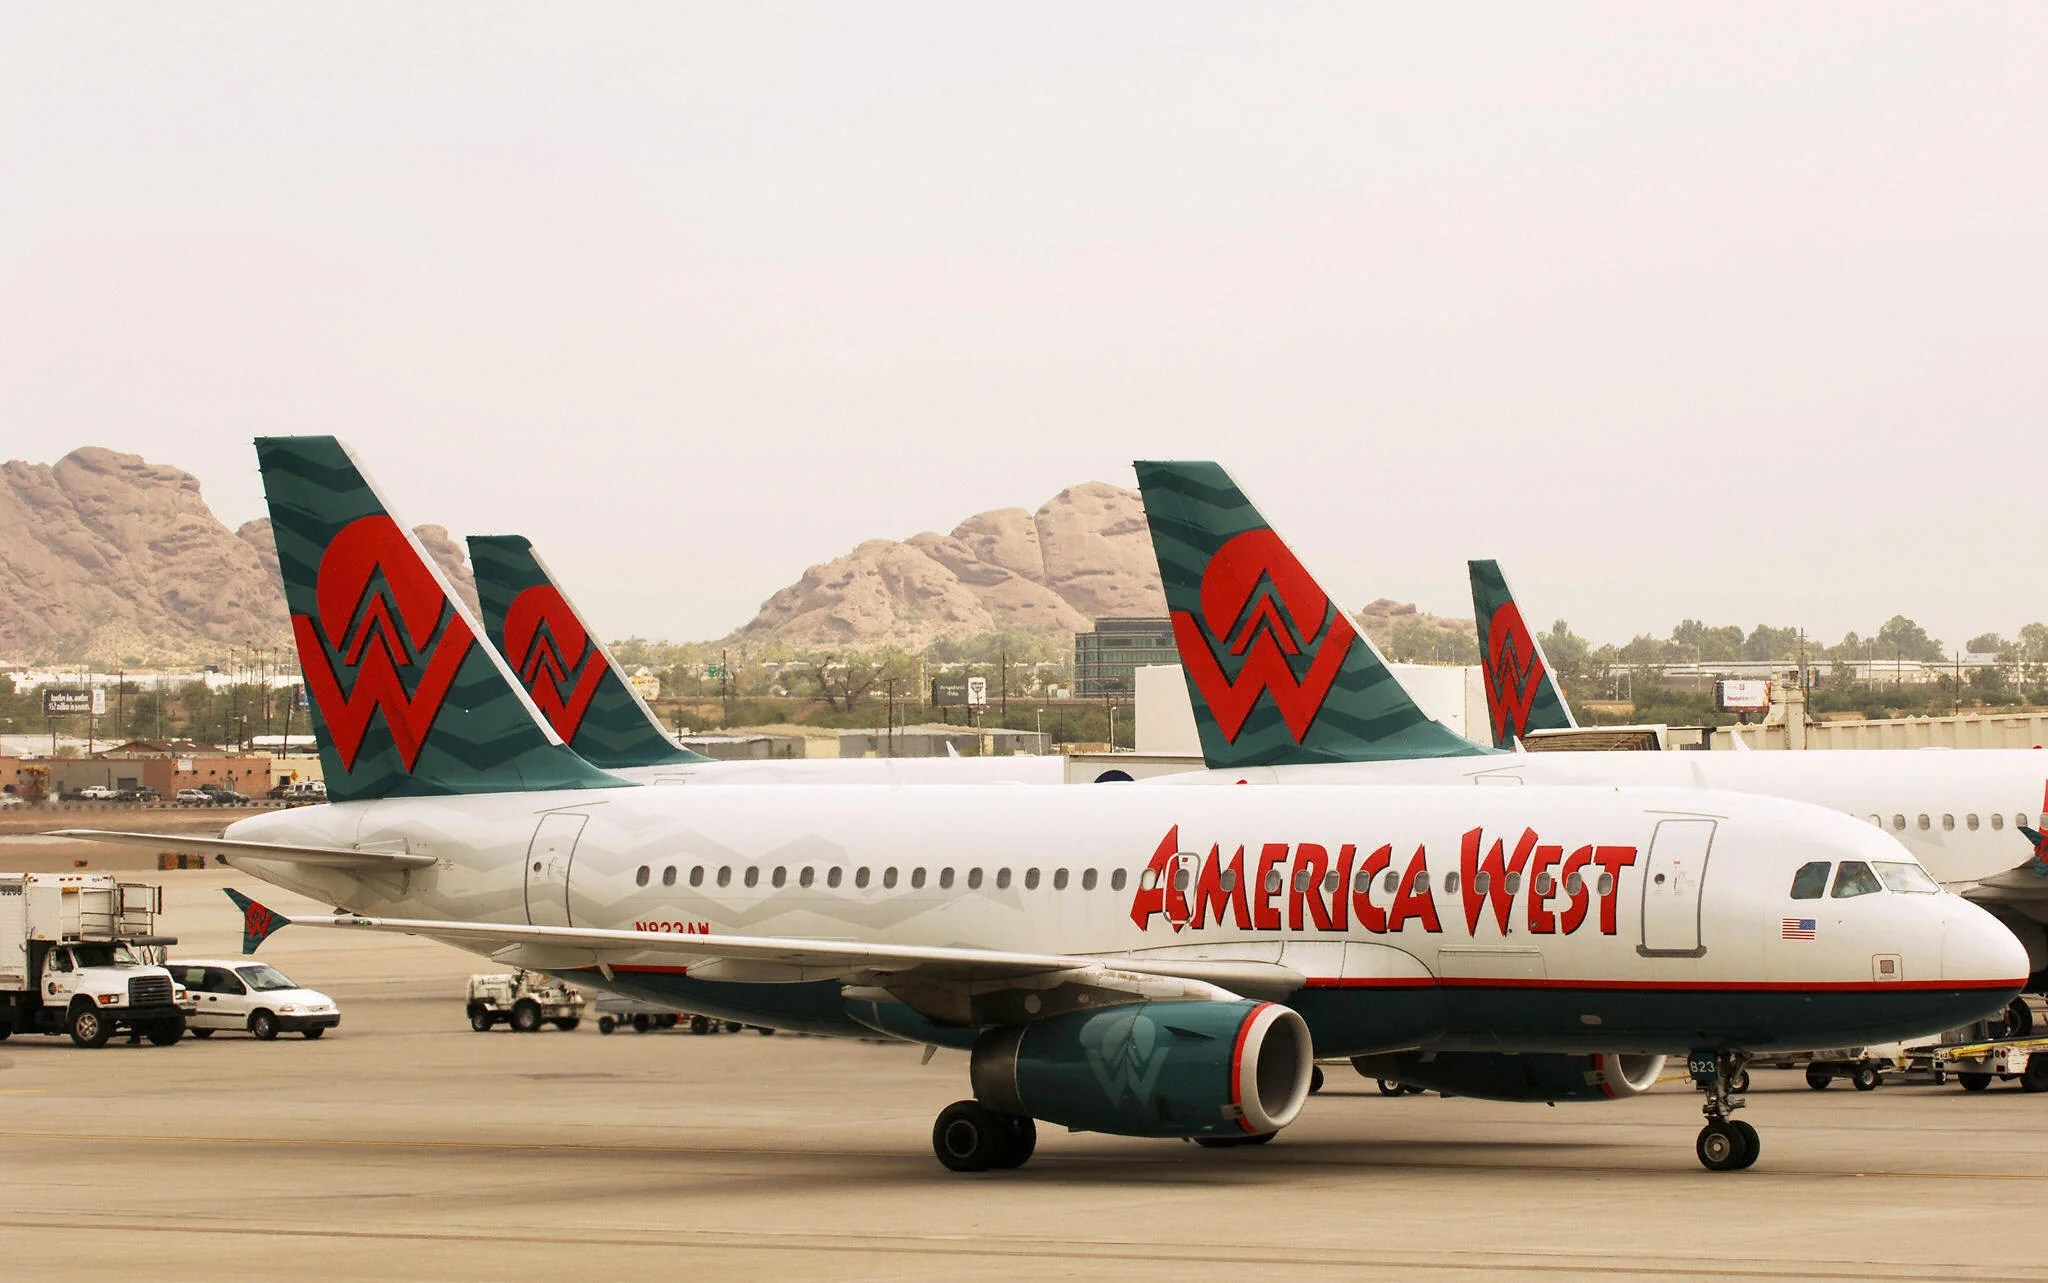 My hotel had the phone number for America West; here's what happened when I called